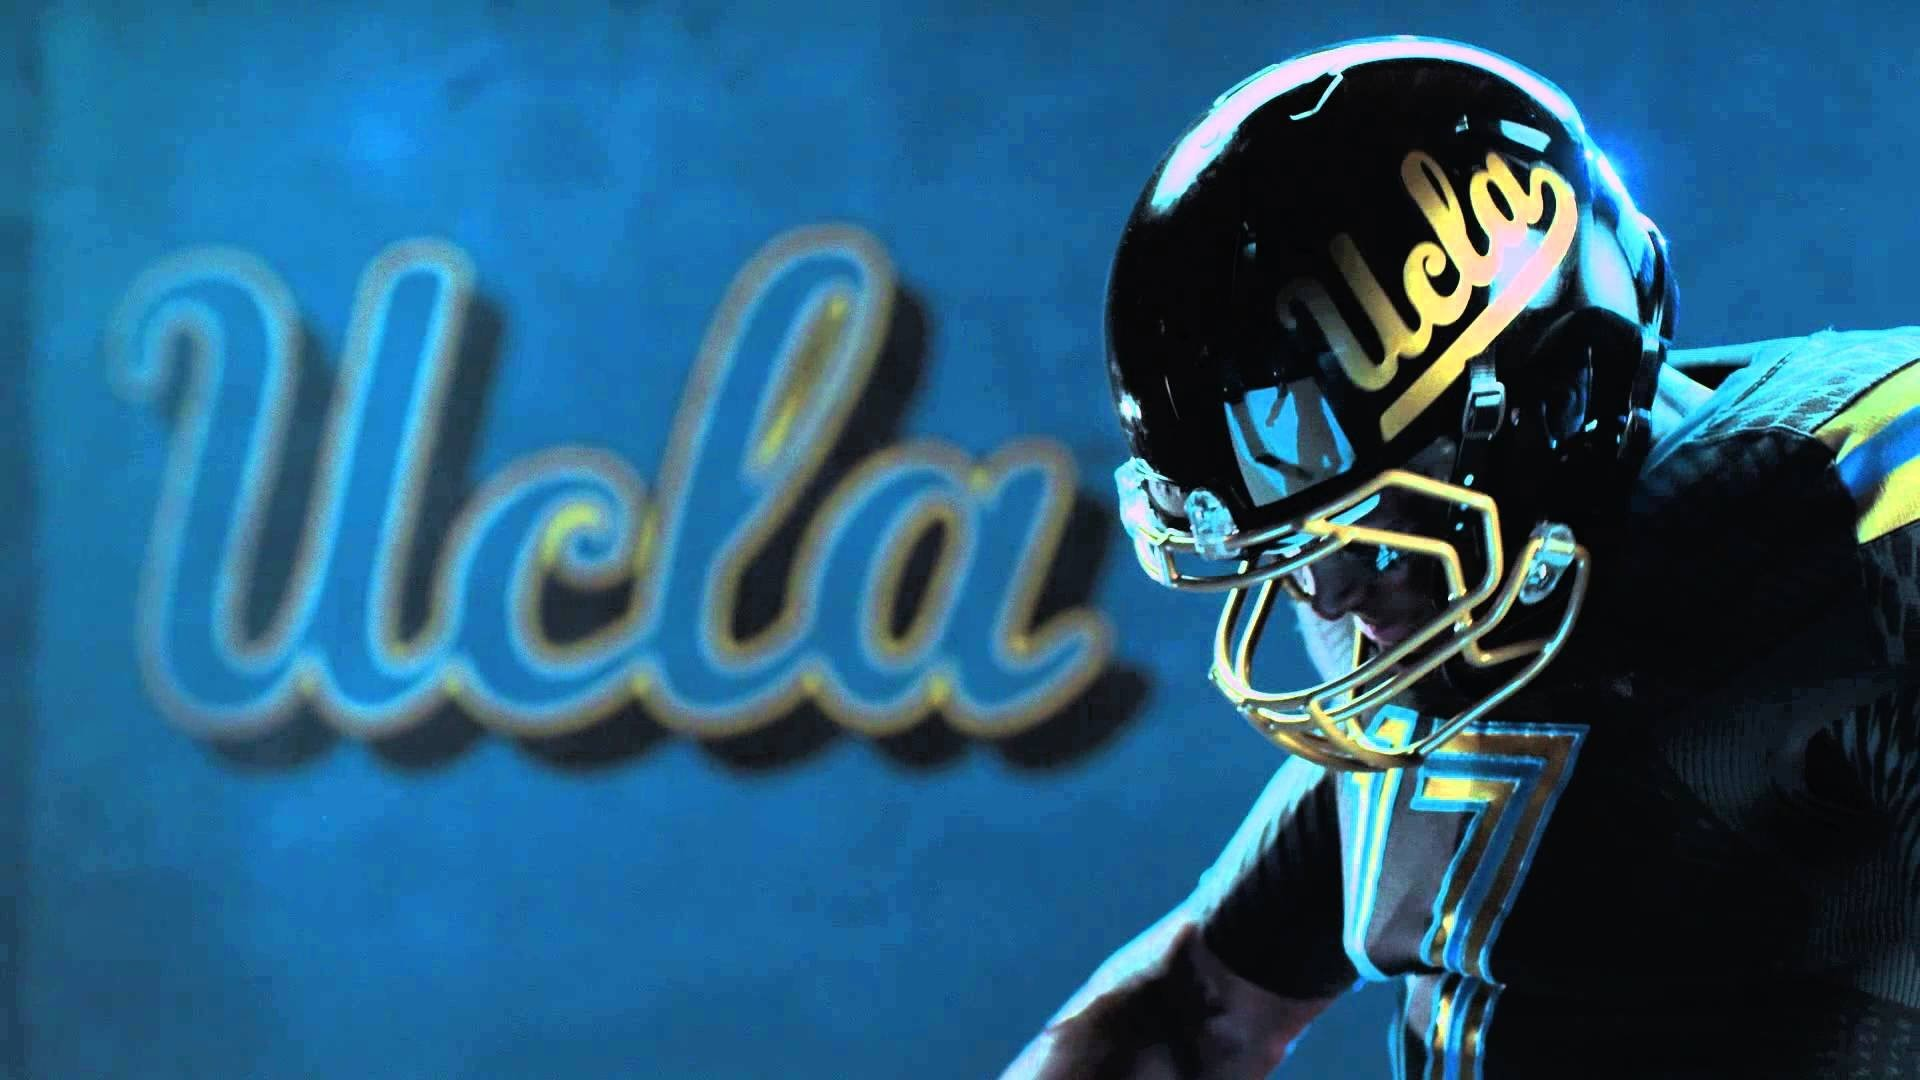 Res: 1920x1080, UCLA BRUINS college football california wallpaper |  | 593445 |  WallpaperUP